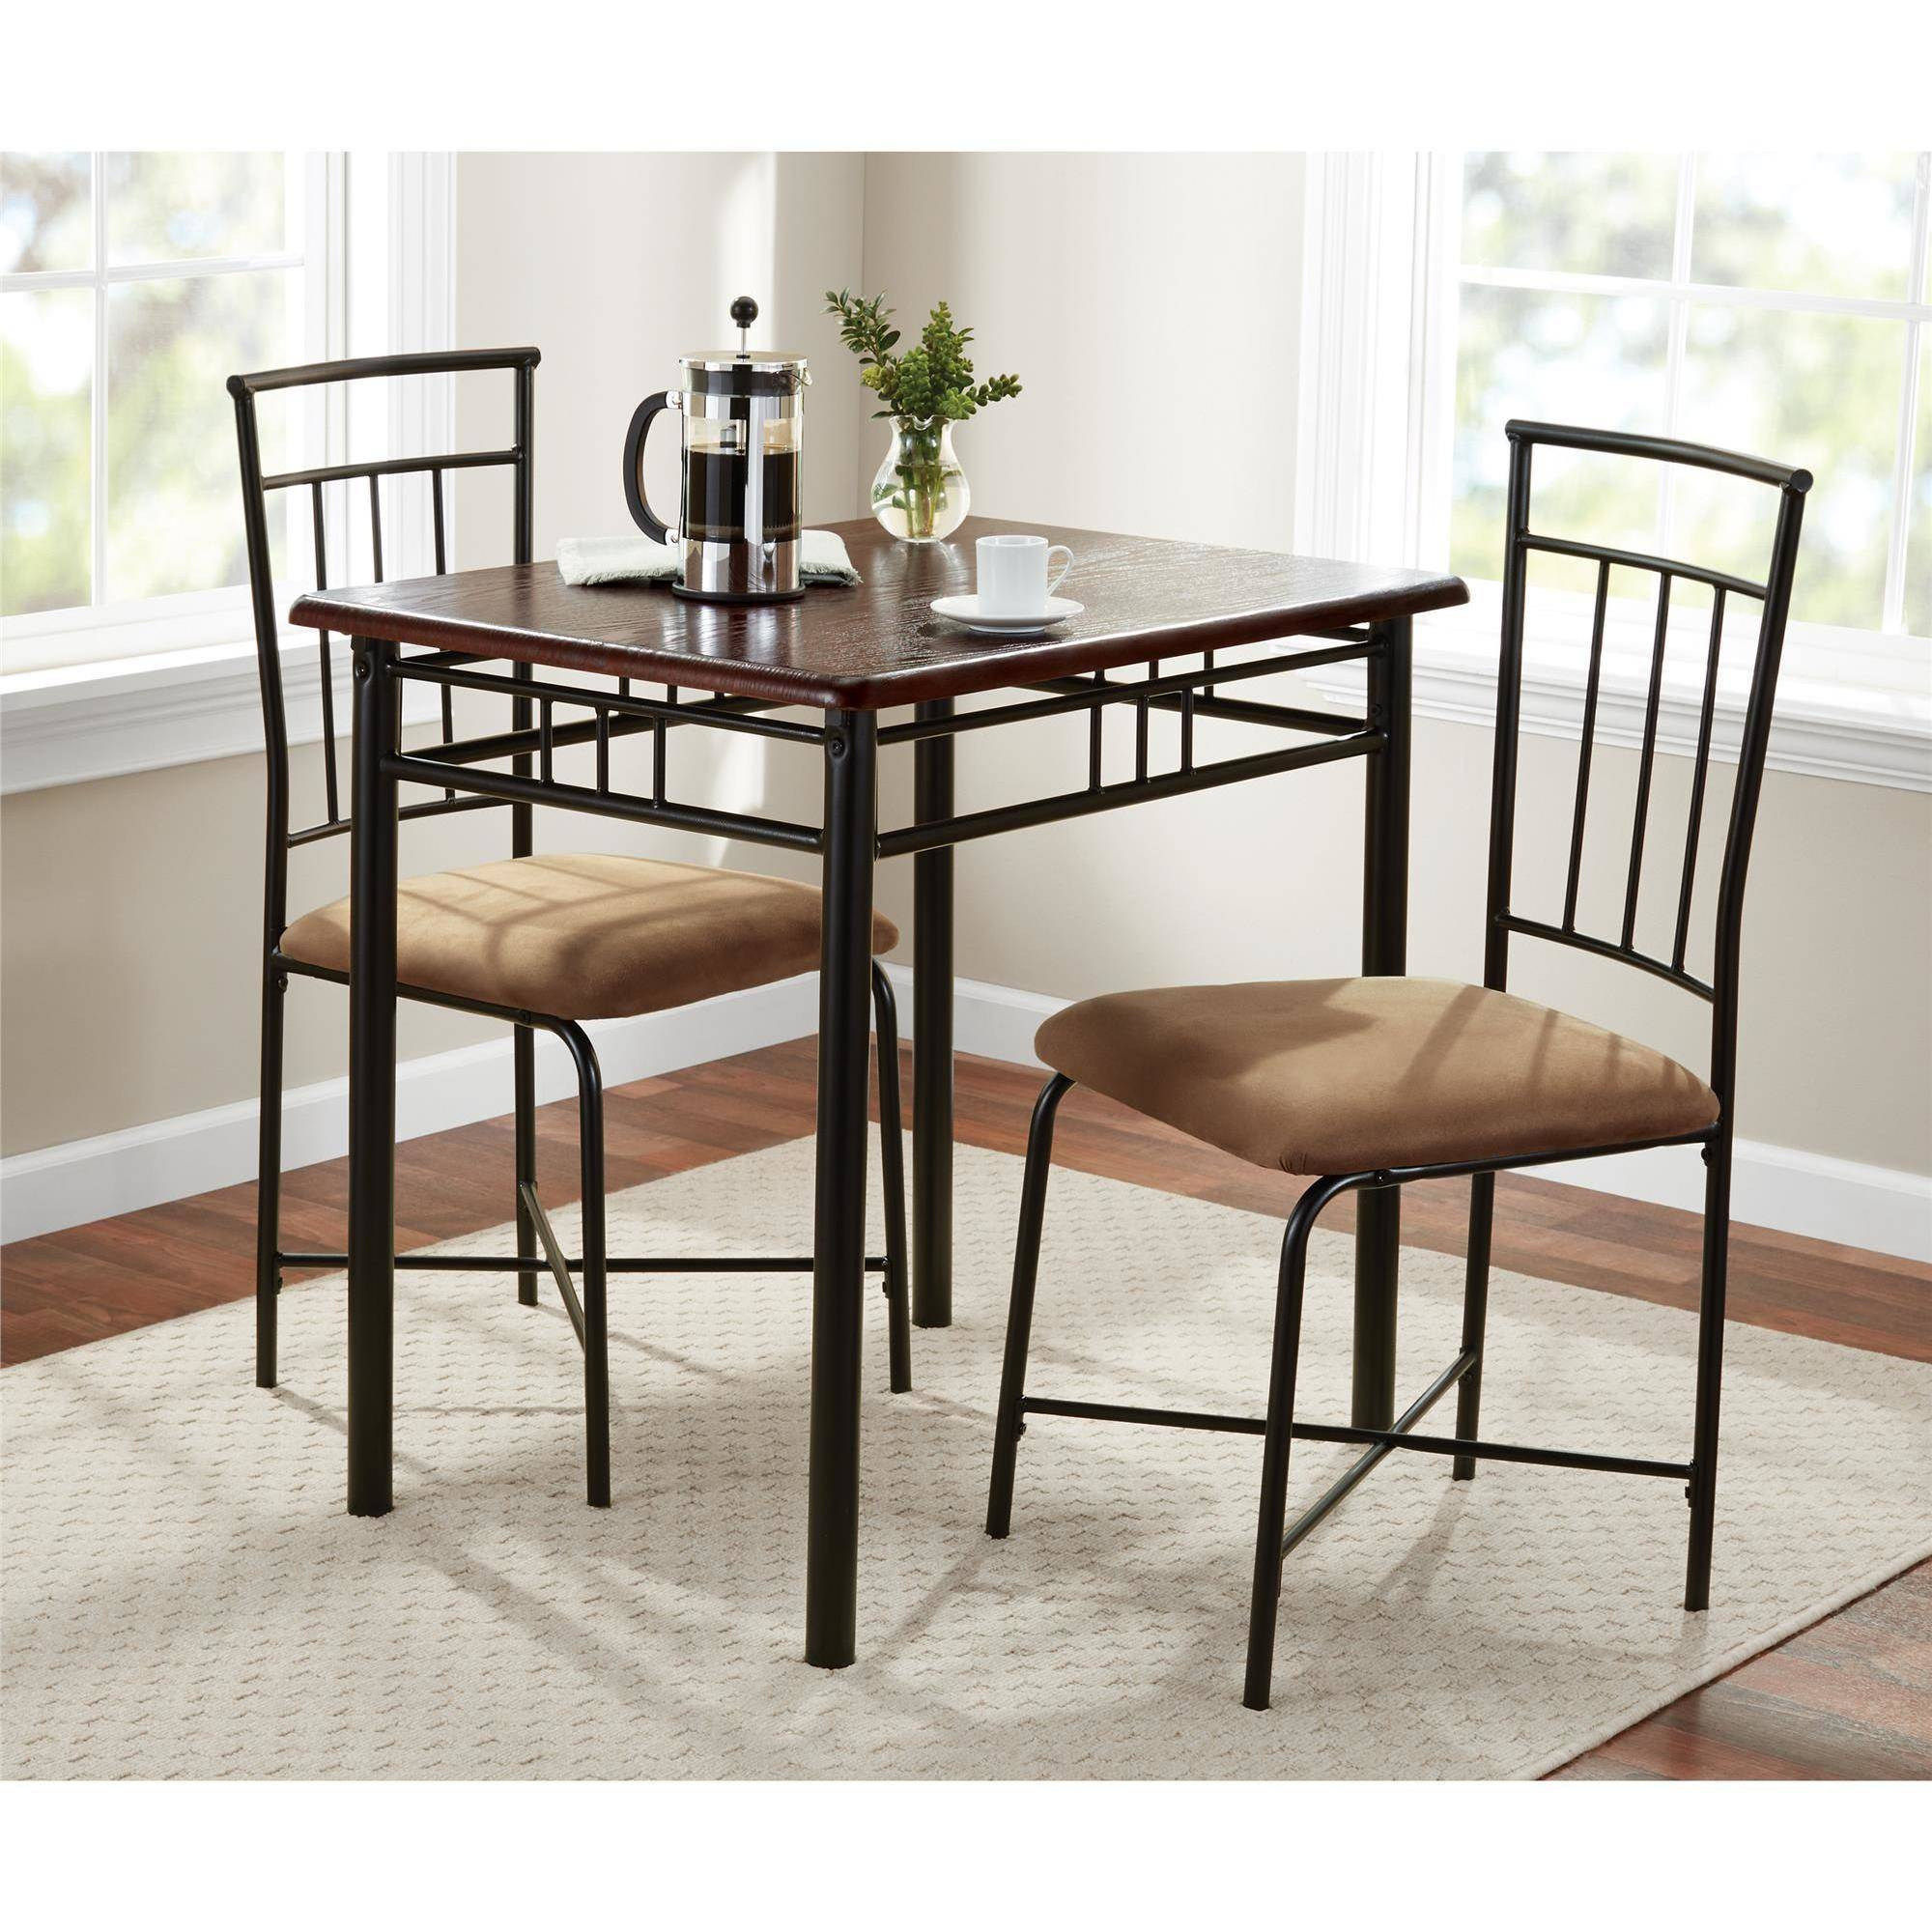 Inspiration about Latest Mainstays 3 Piece Dining Set, Wood And Metal – Walmart Within Bearden 3 Piece Dining Sets (#17 of 20)